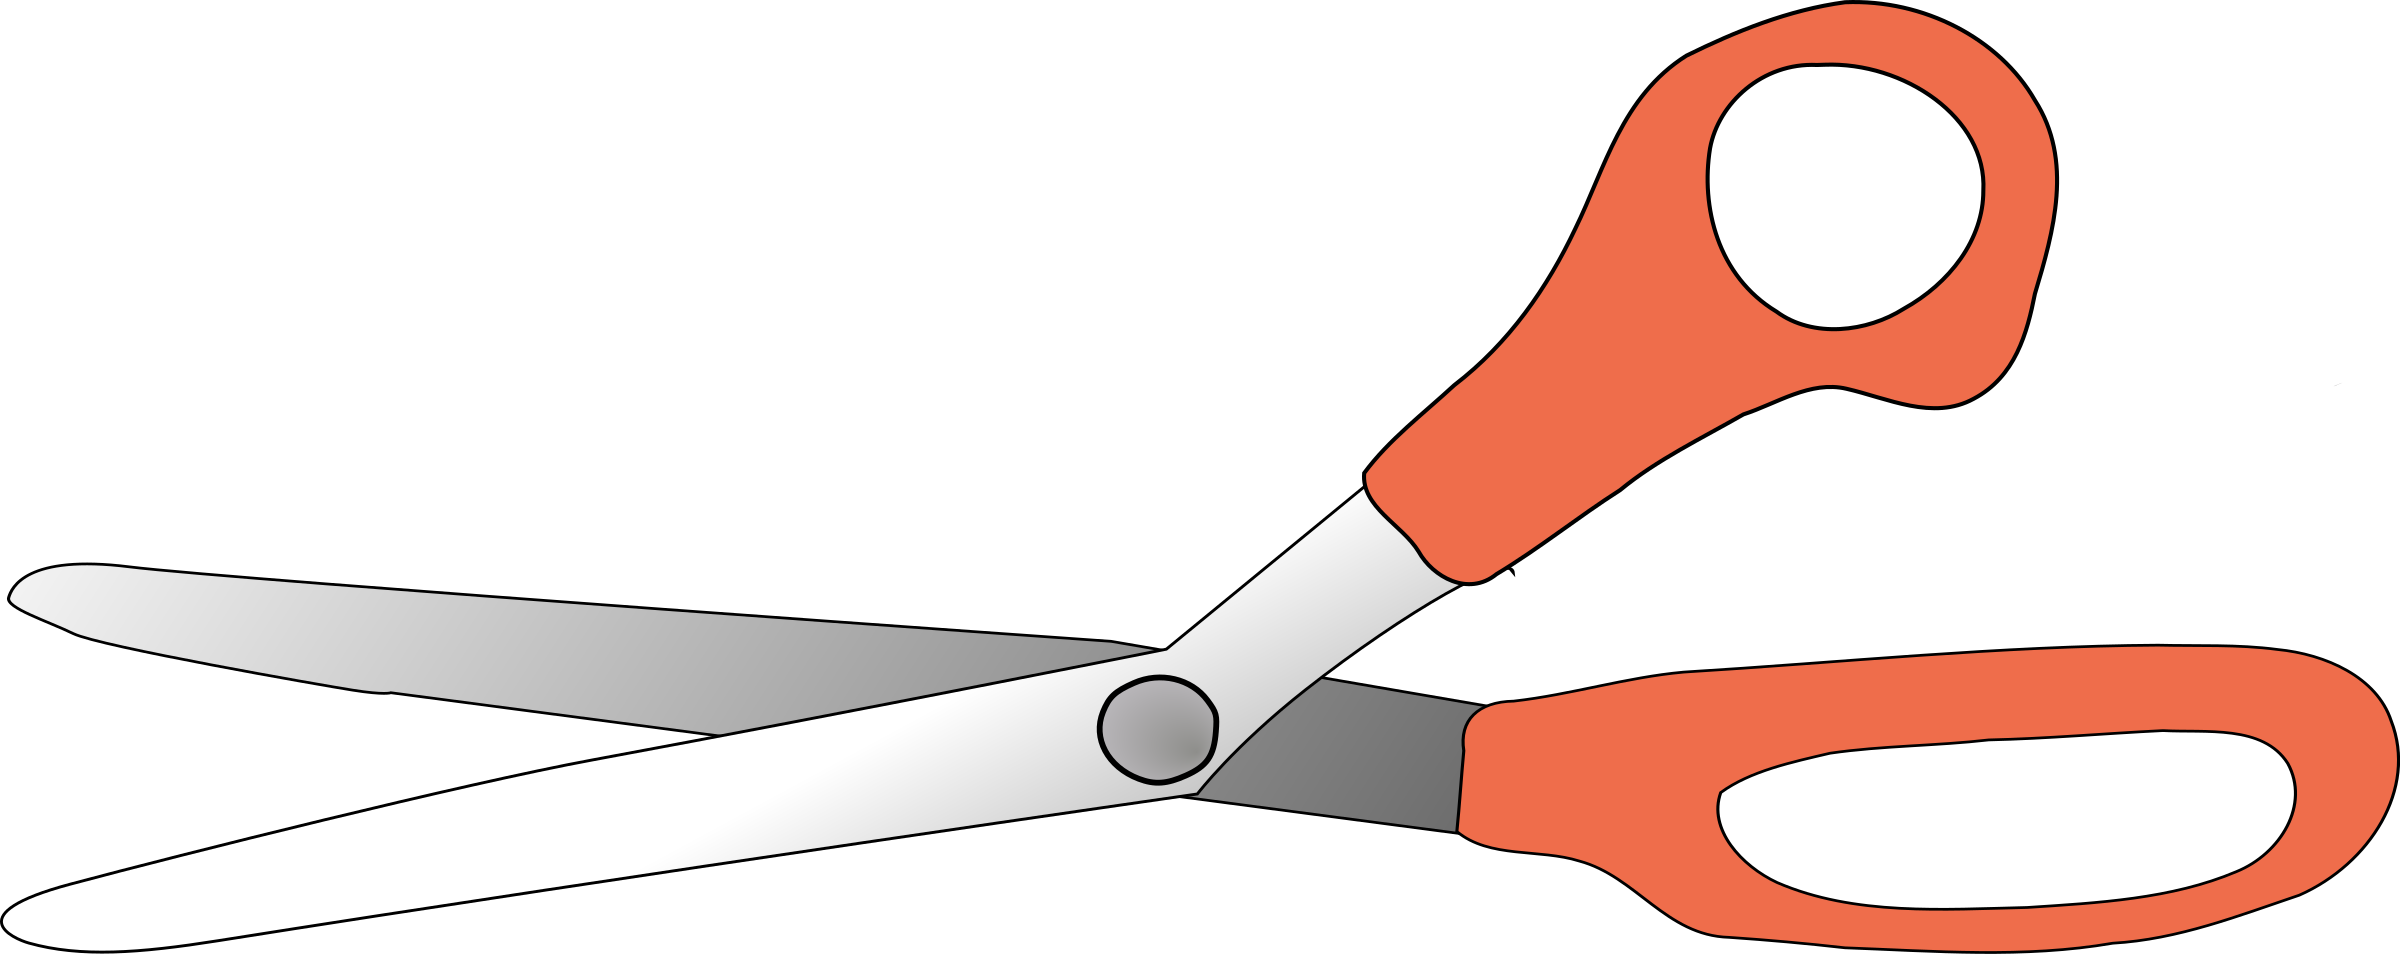 scissors  open by TheresaKnott